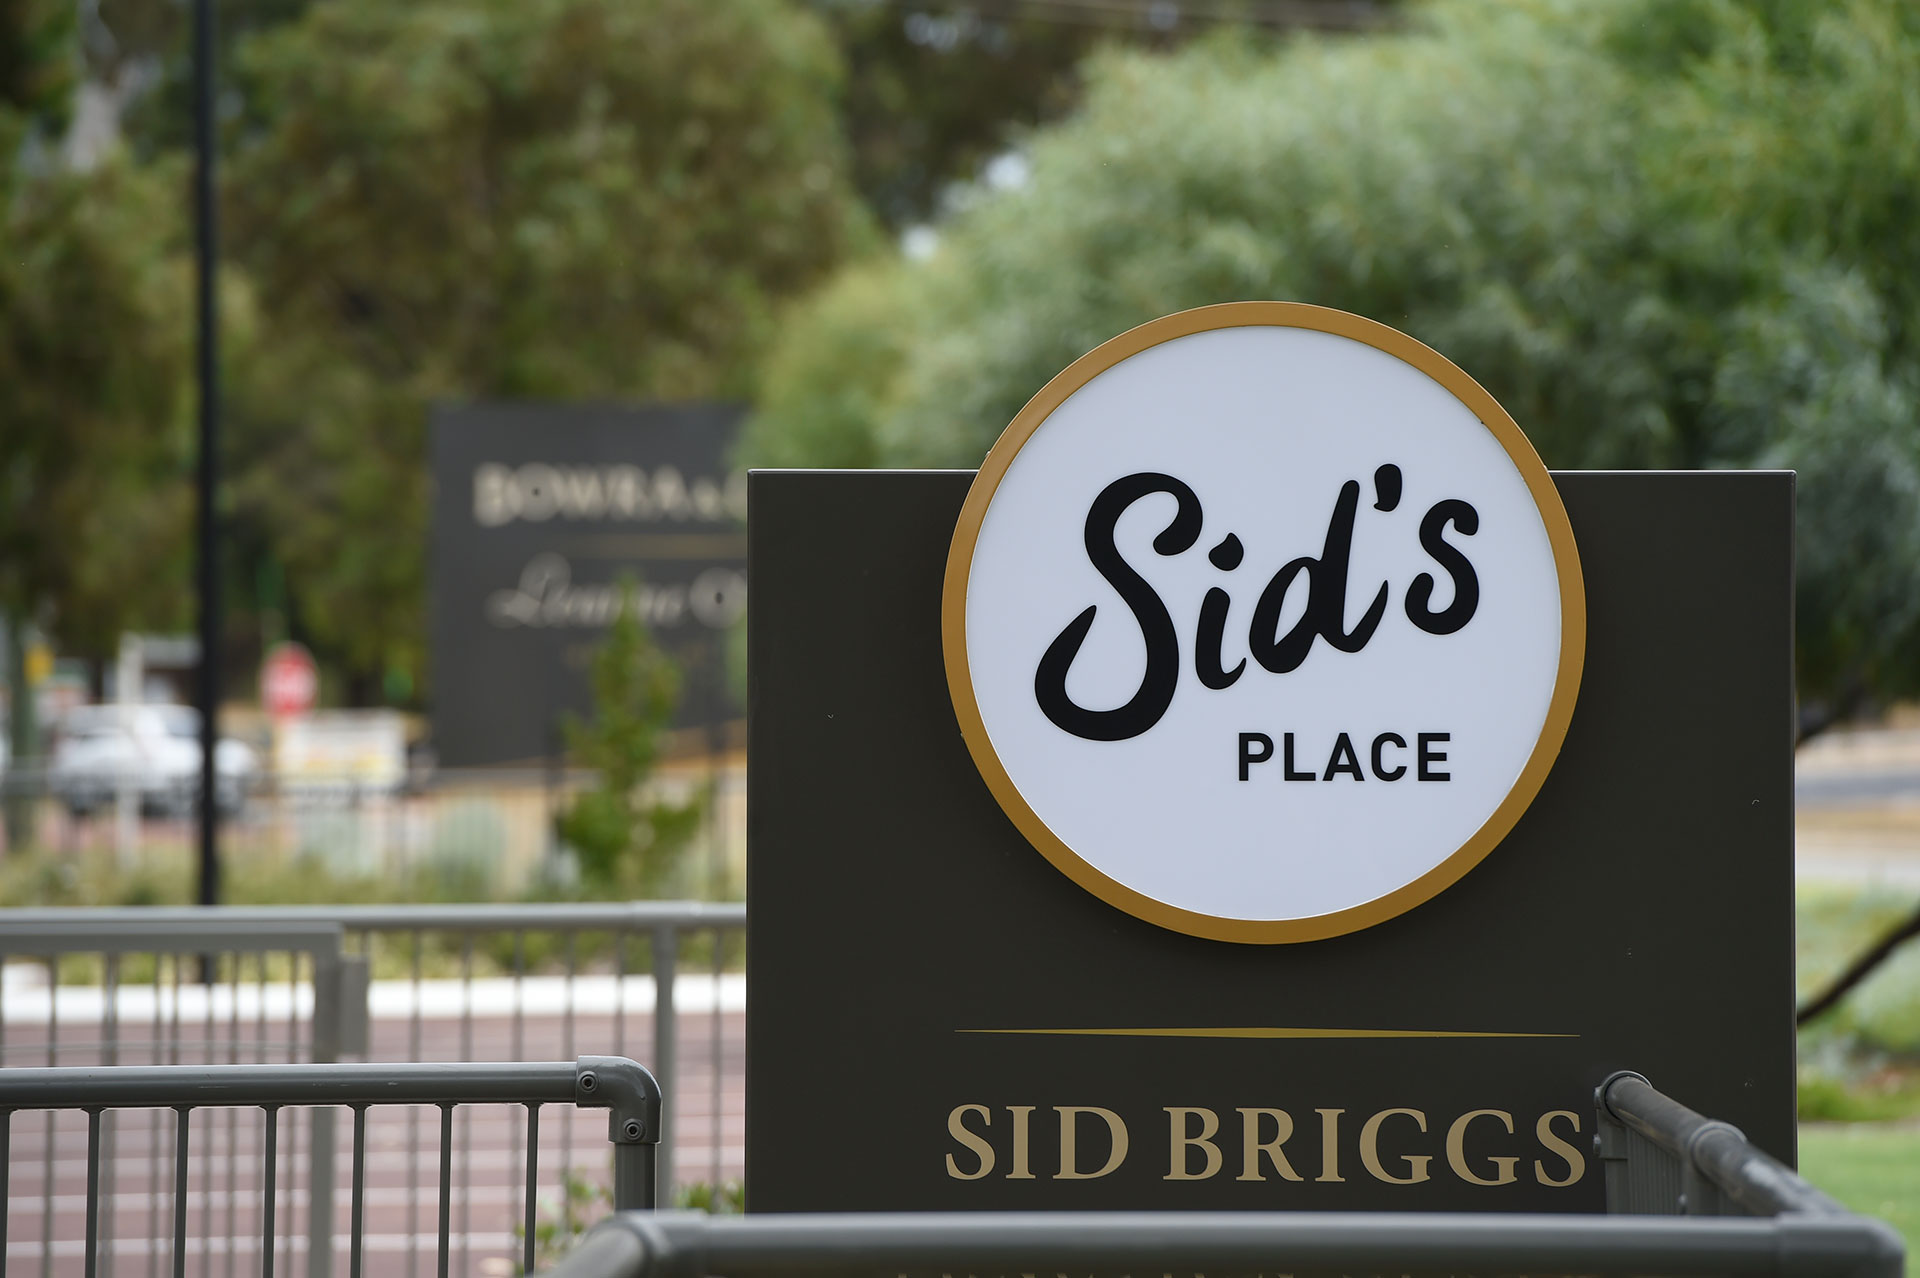 Sid's Place is now Open!